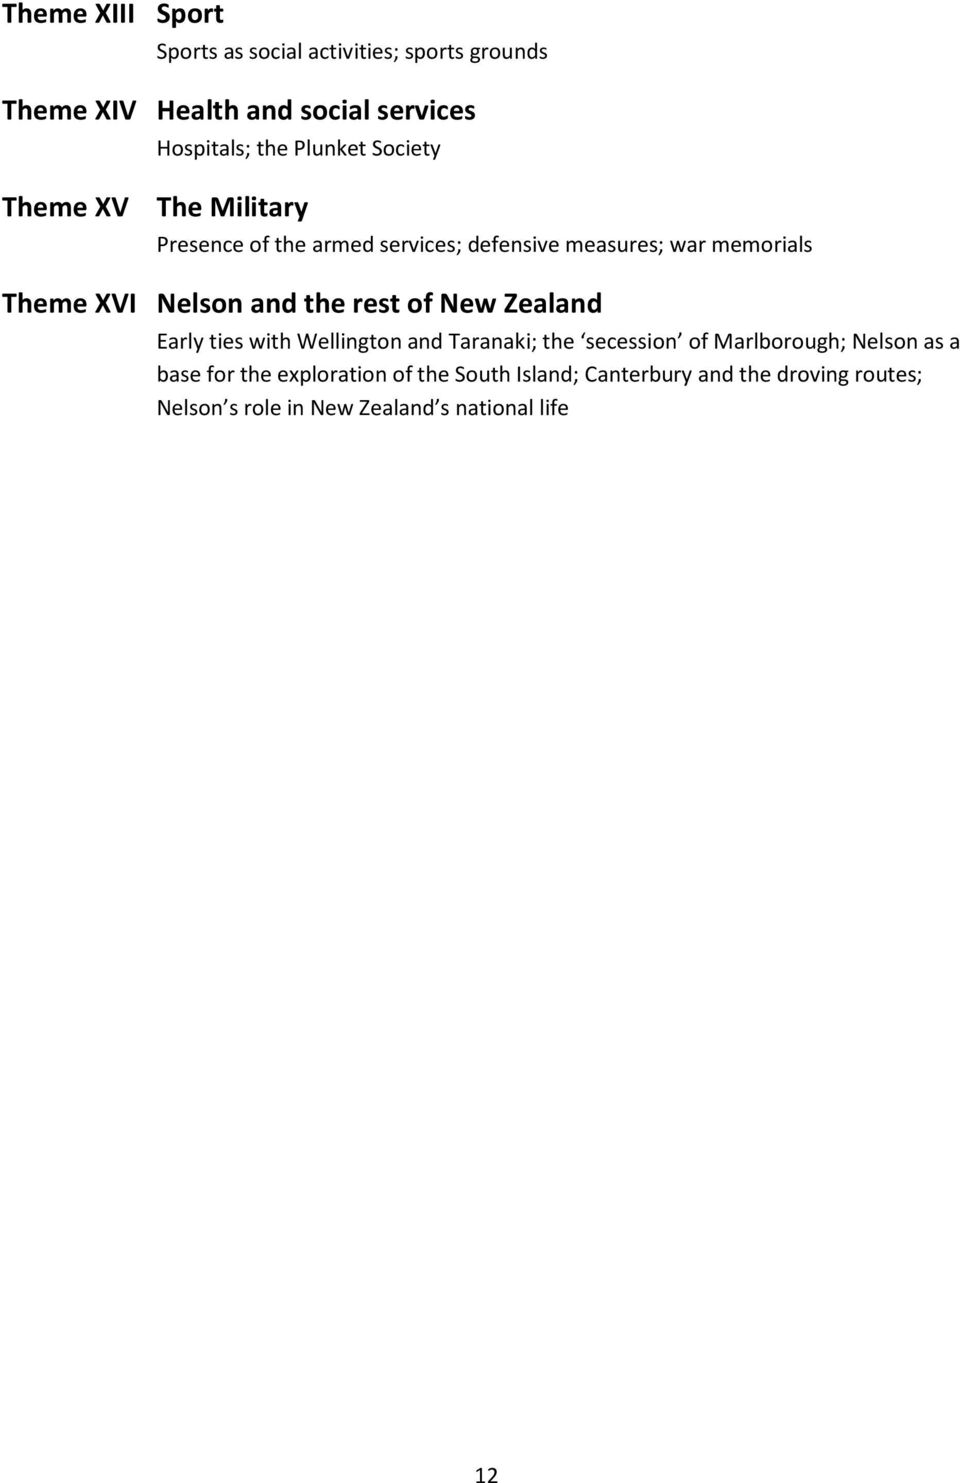 Nelson and the rest of New Zealand Early ties with Wellington and Taranaki; the secession of Marlborough; Nelson as a